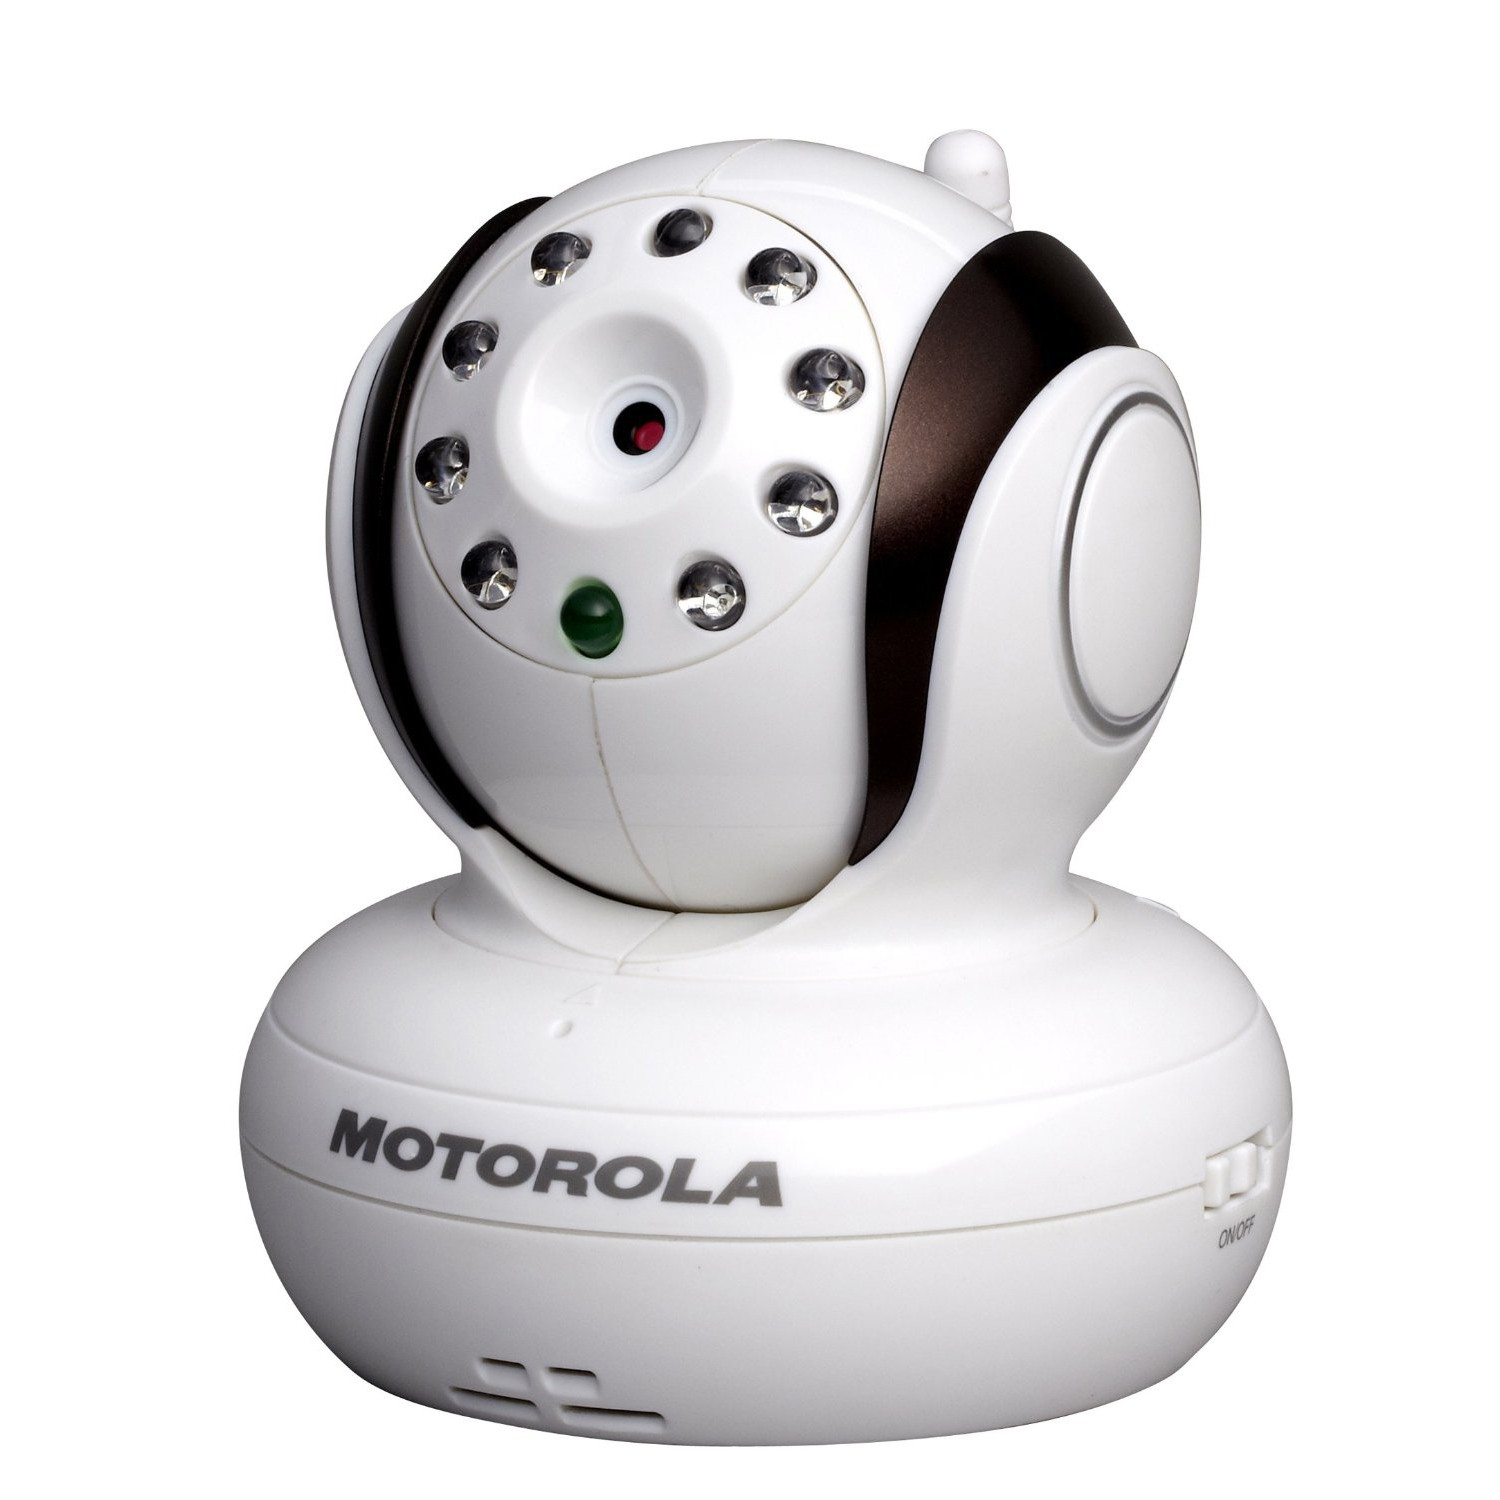 motorola additional camera for motorola mbp36 baby monitor brown with white. Black Bedroom Furniture Sets. Home Design Ideas